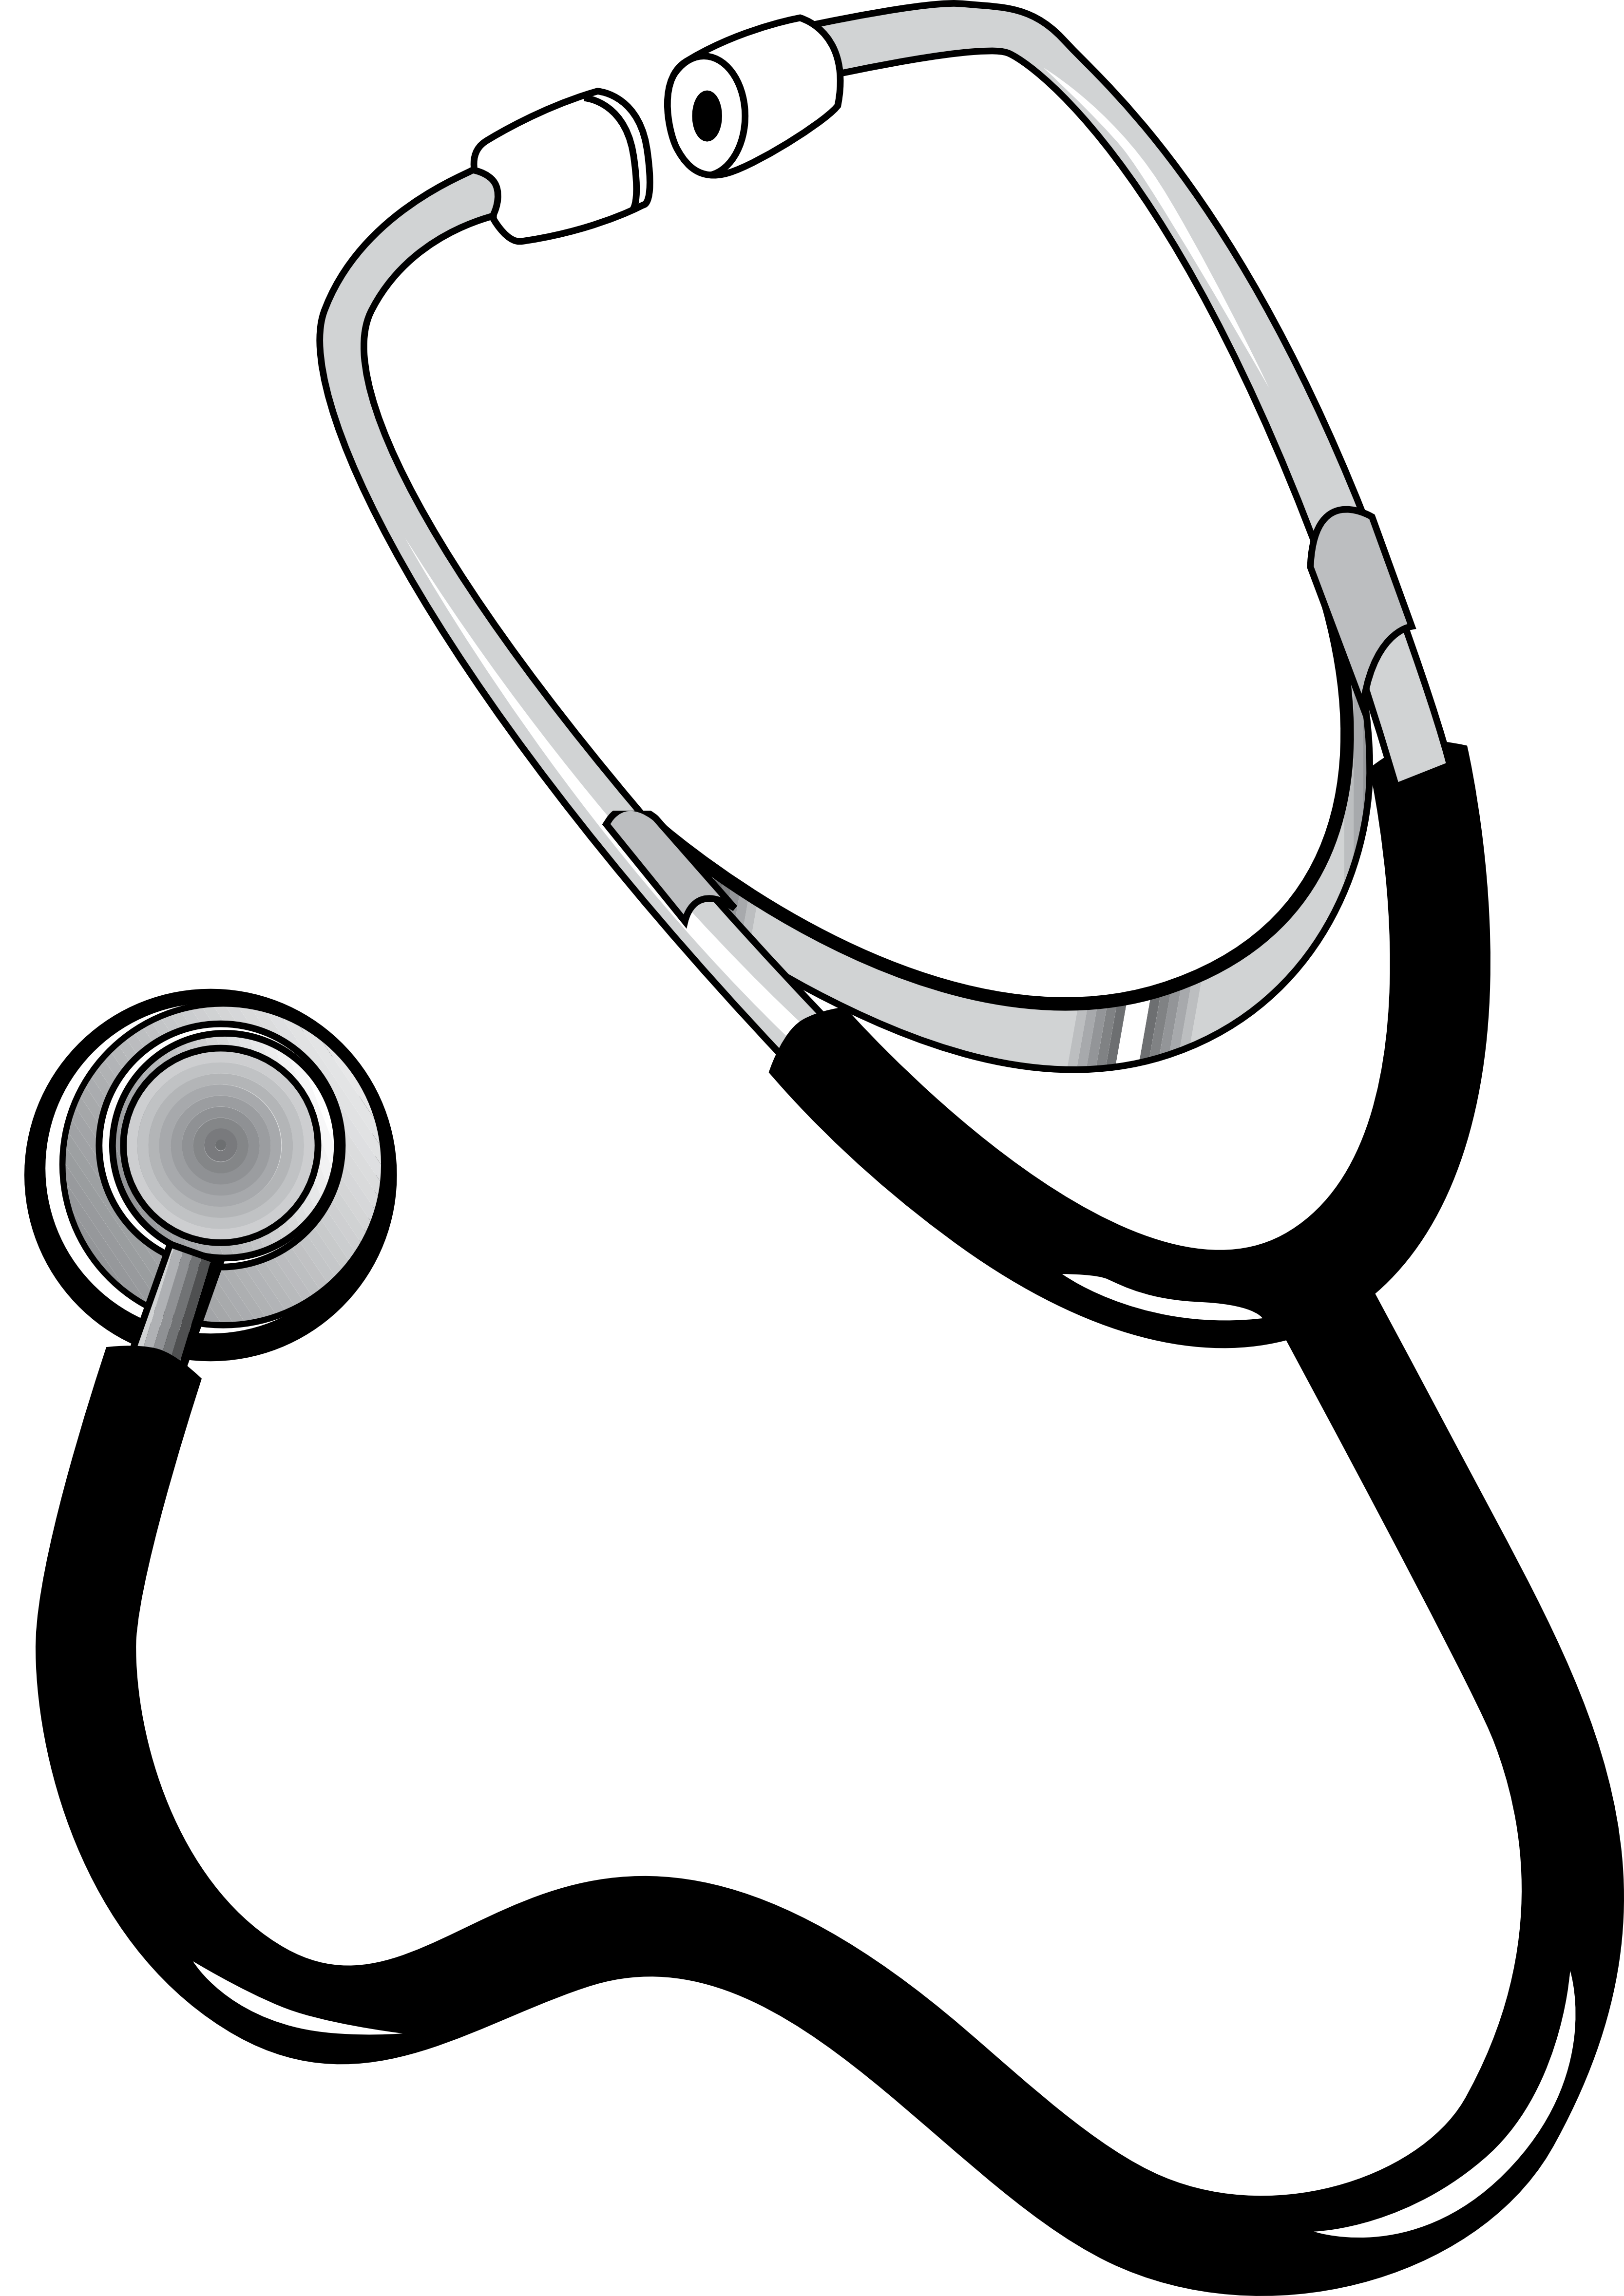 Watch clip stethoscope. Doctor black and